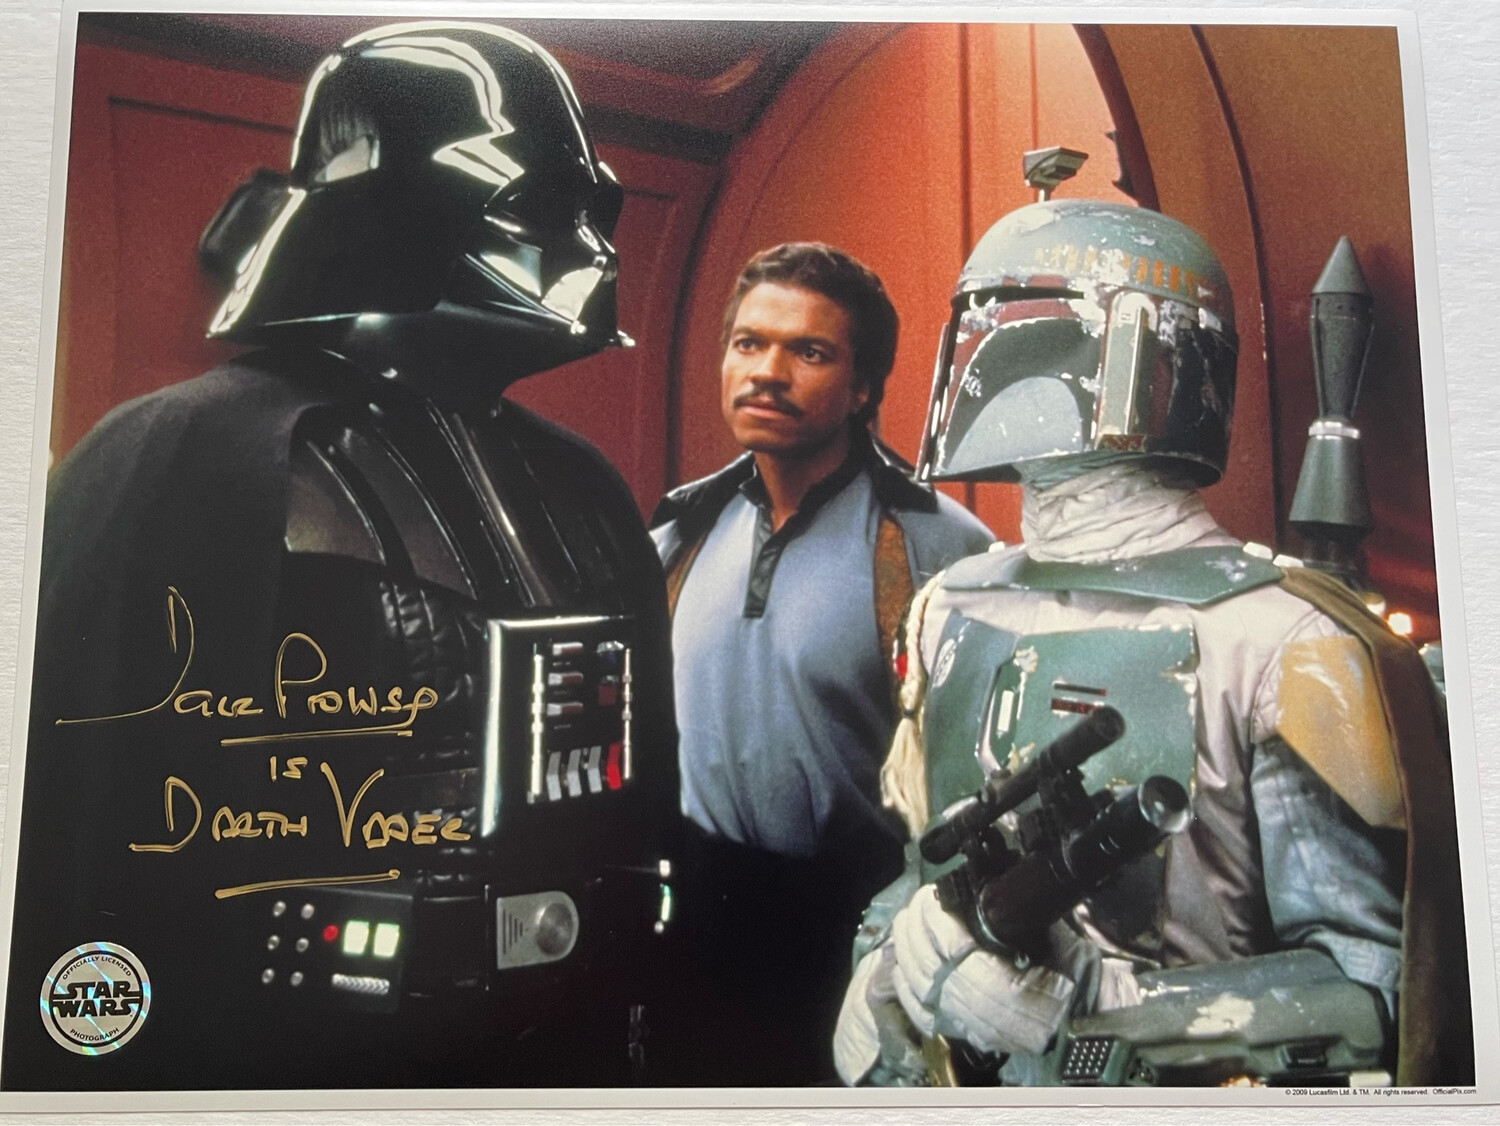 11X14 DARTH VADER PHOTO SIGNED BY DAVE PROWSE